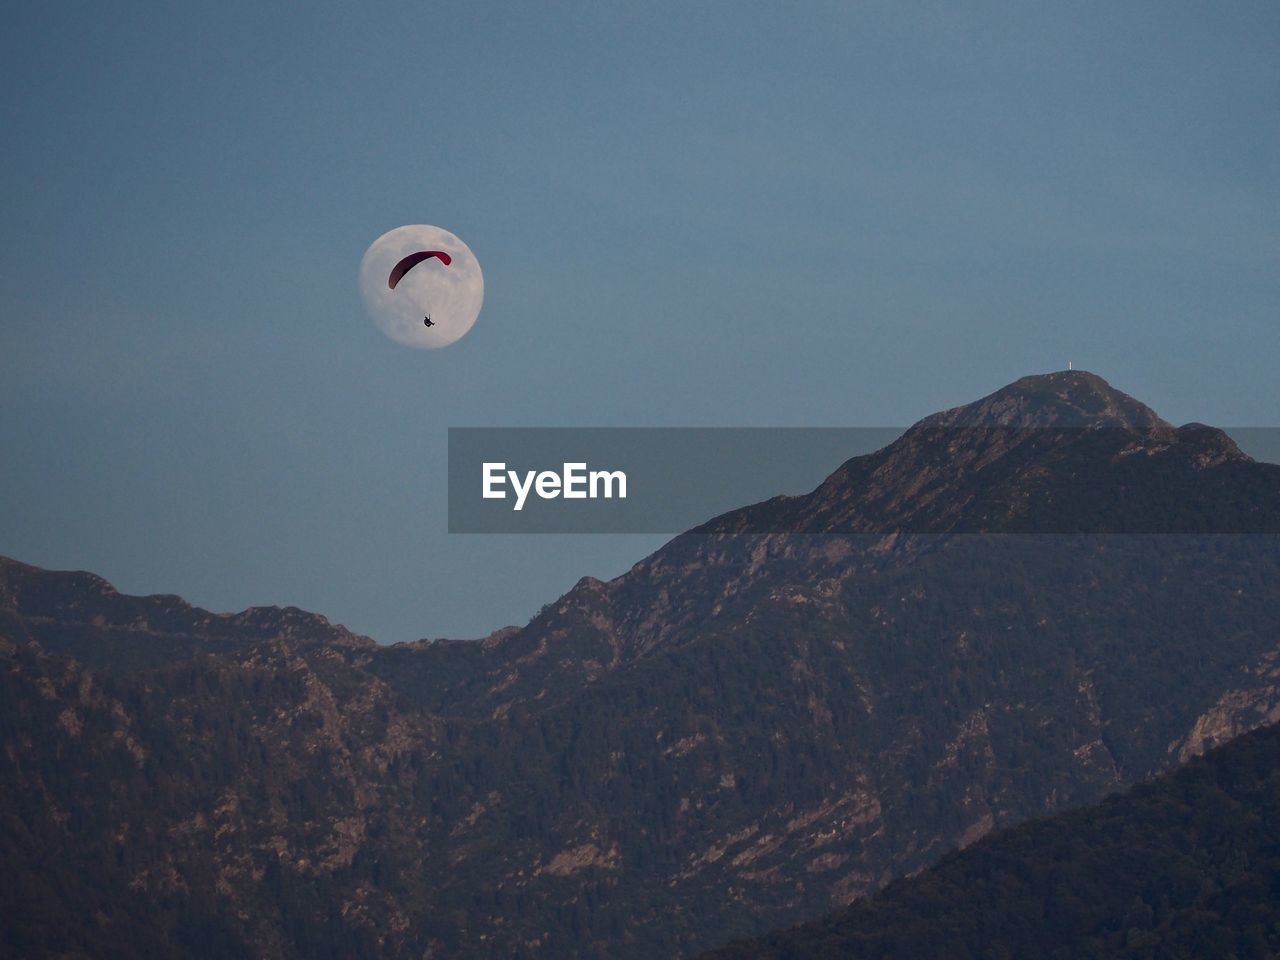 Low angle view of a paraglider in front of the moon in mountains against clear sky